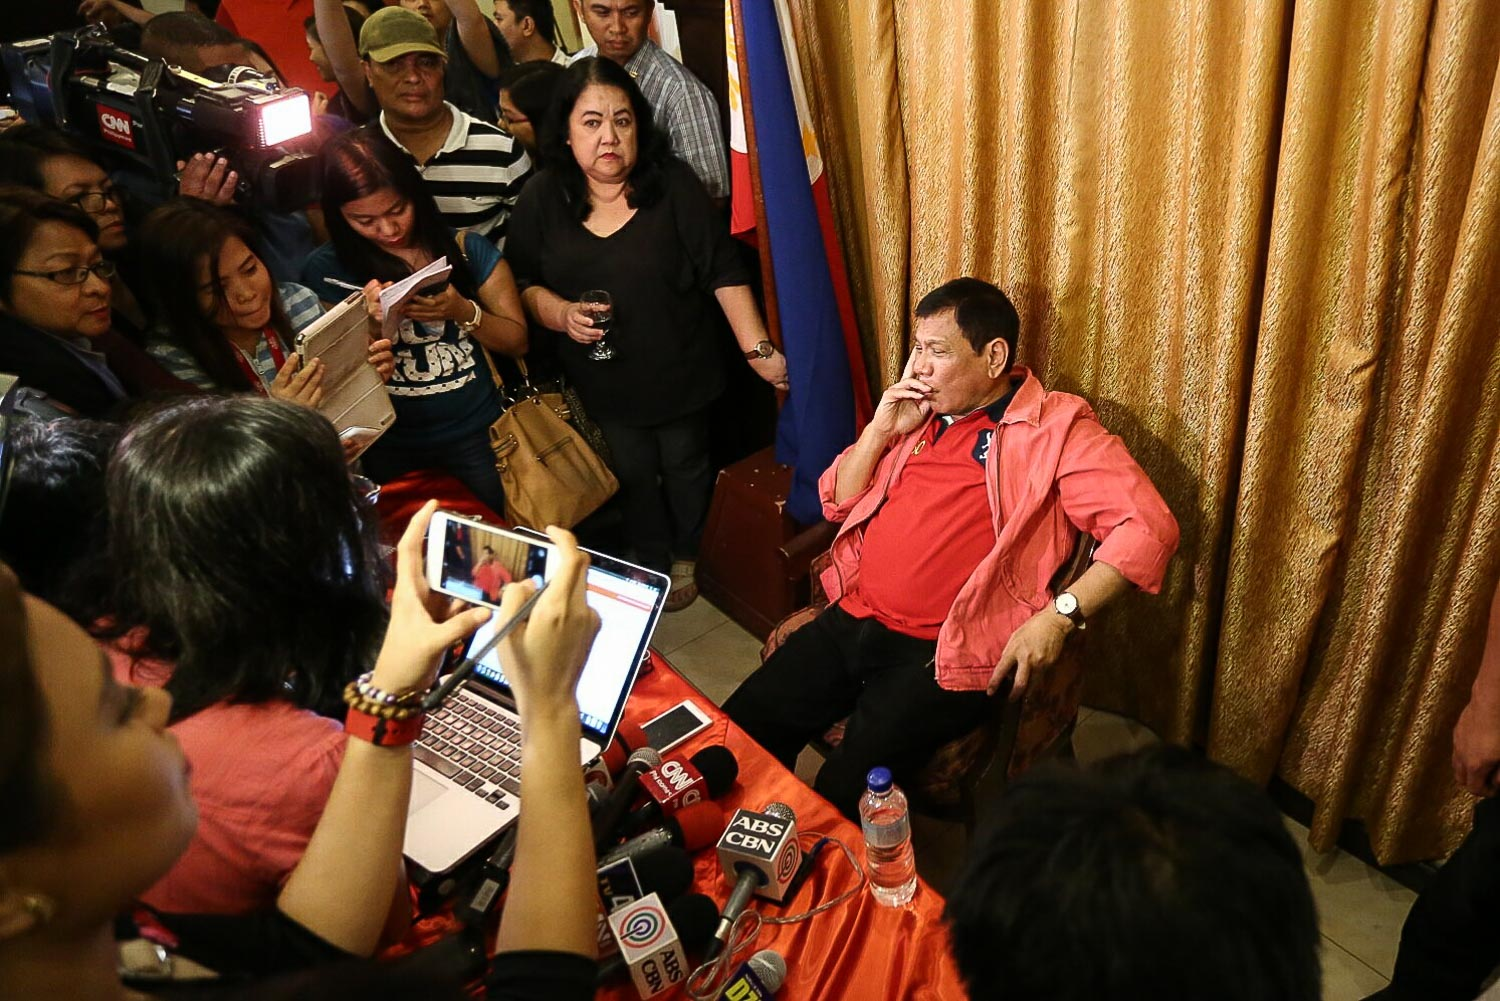 CRITICAL. Rodrigo Duterte speaks with reporters in a press conference on May 26, 2016 in Davao City. Photo by Manman Dejeto/Rappler